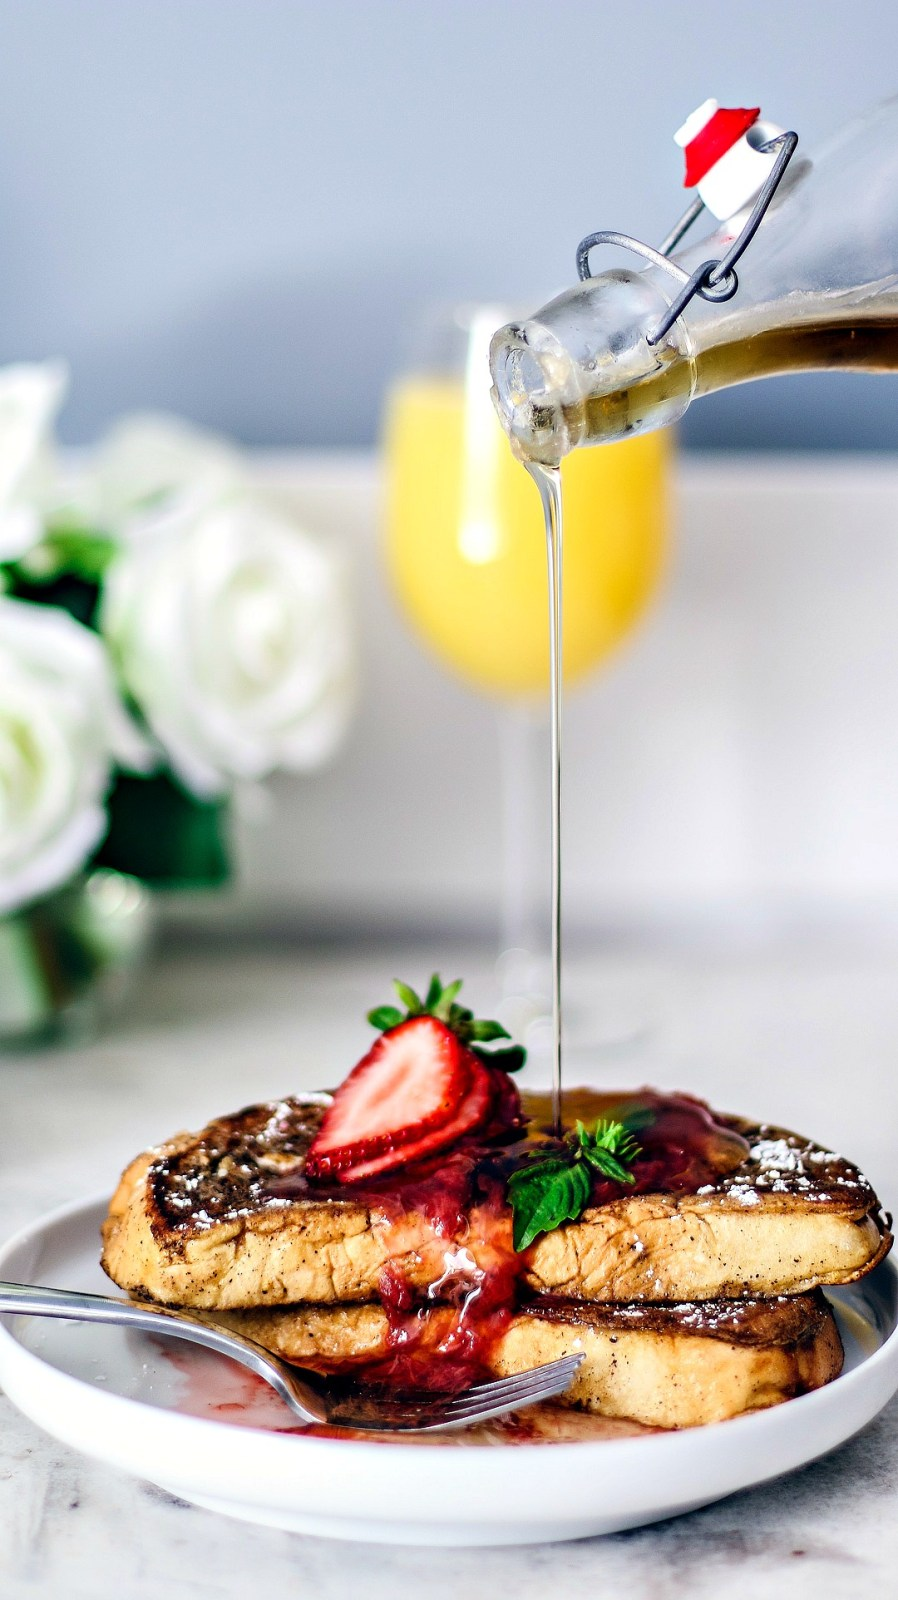 French toast getting a drizzle of maple syrup.